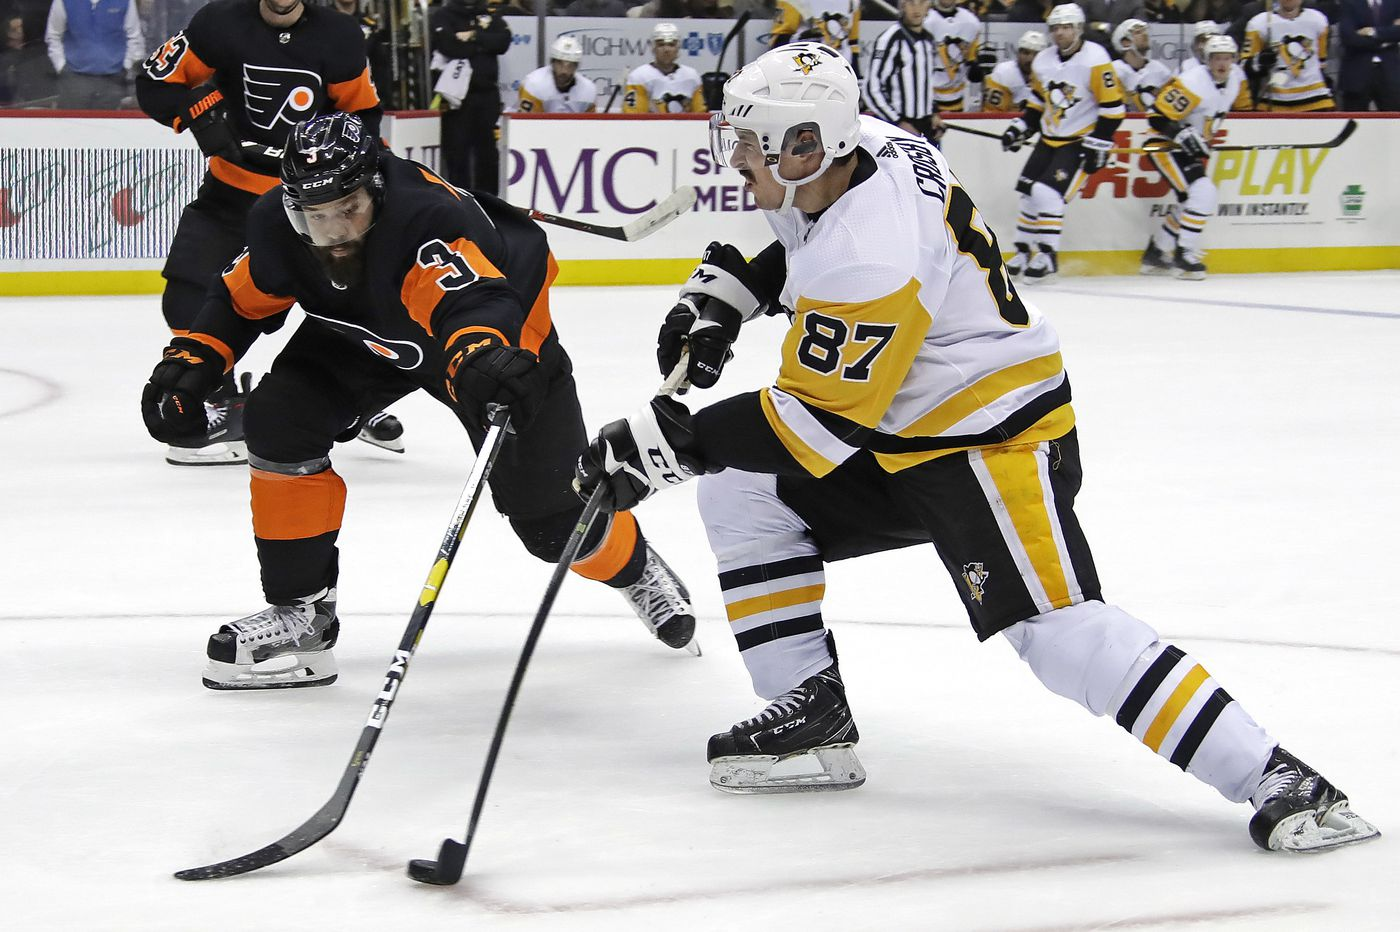 Flyers beat Penguins on the road after stressful week; Simmonds fight ignites win